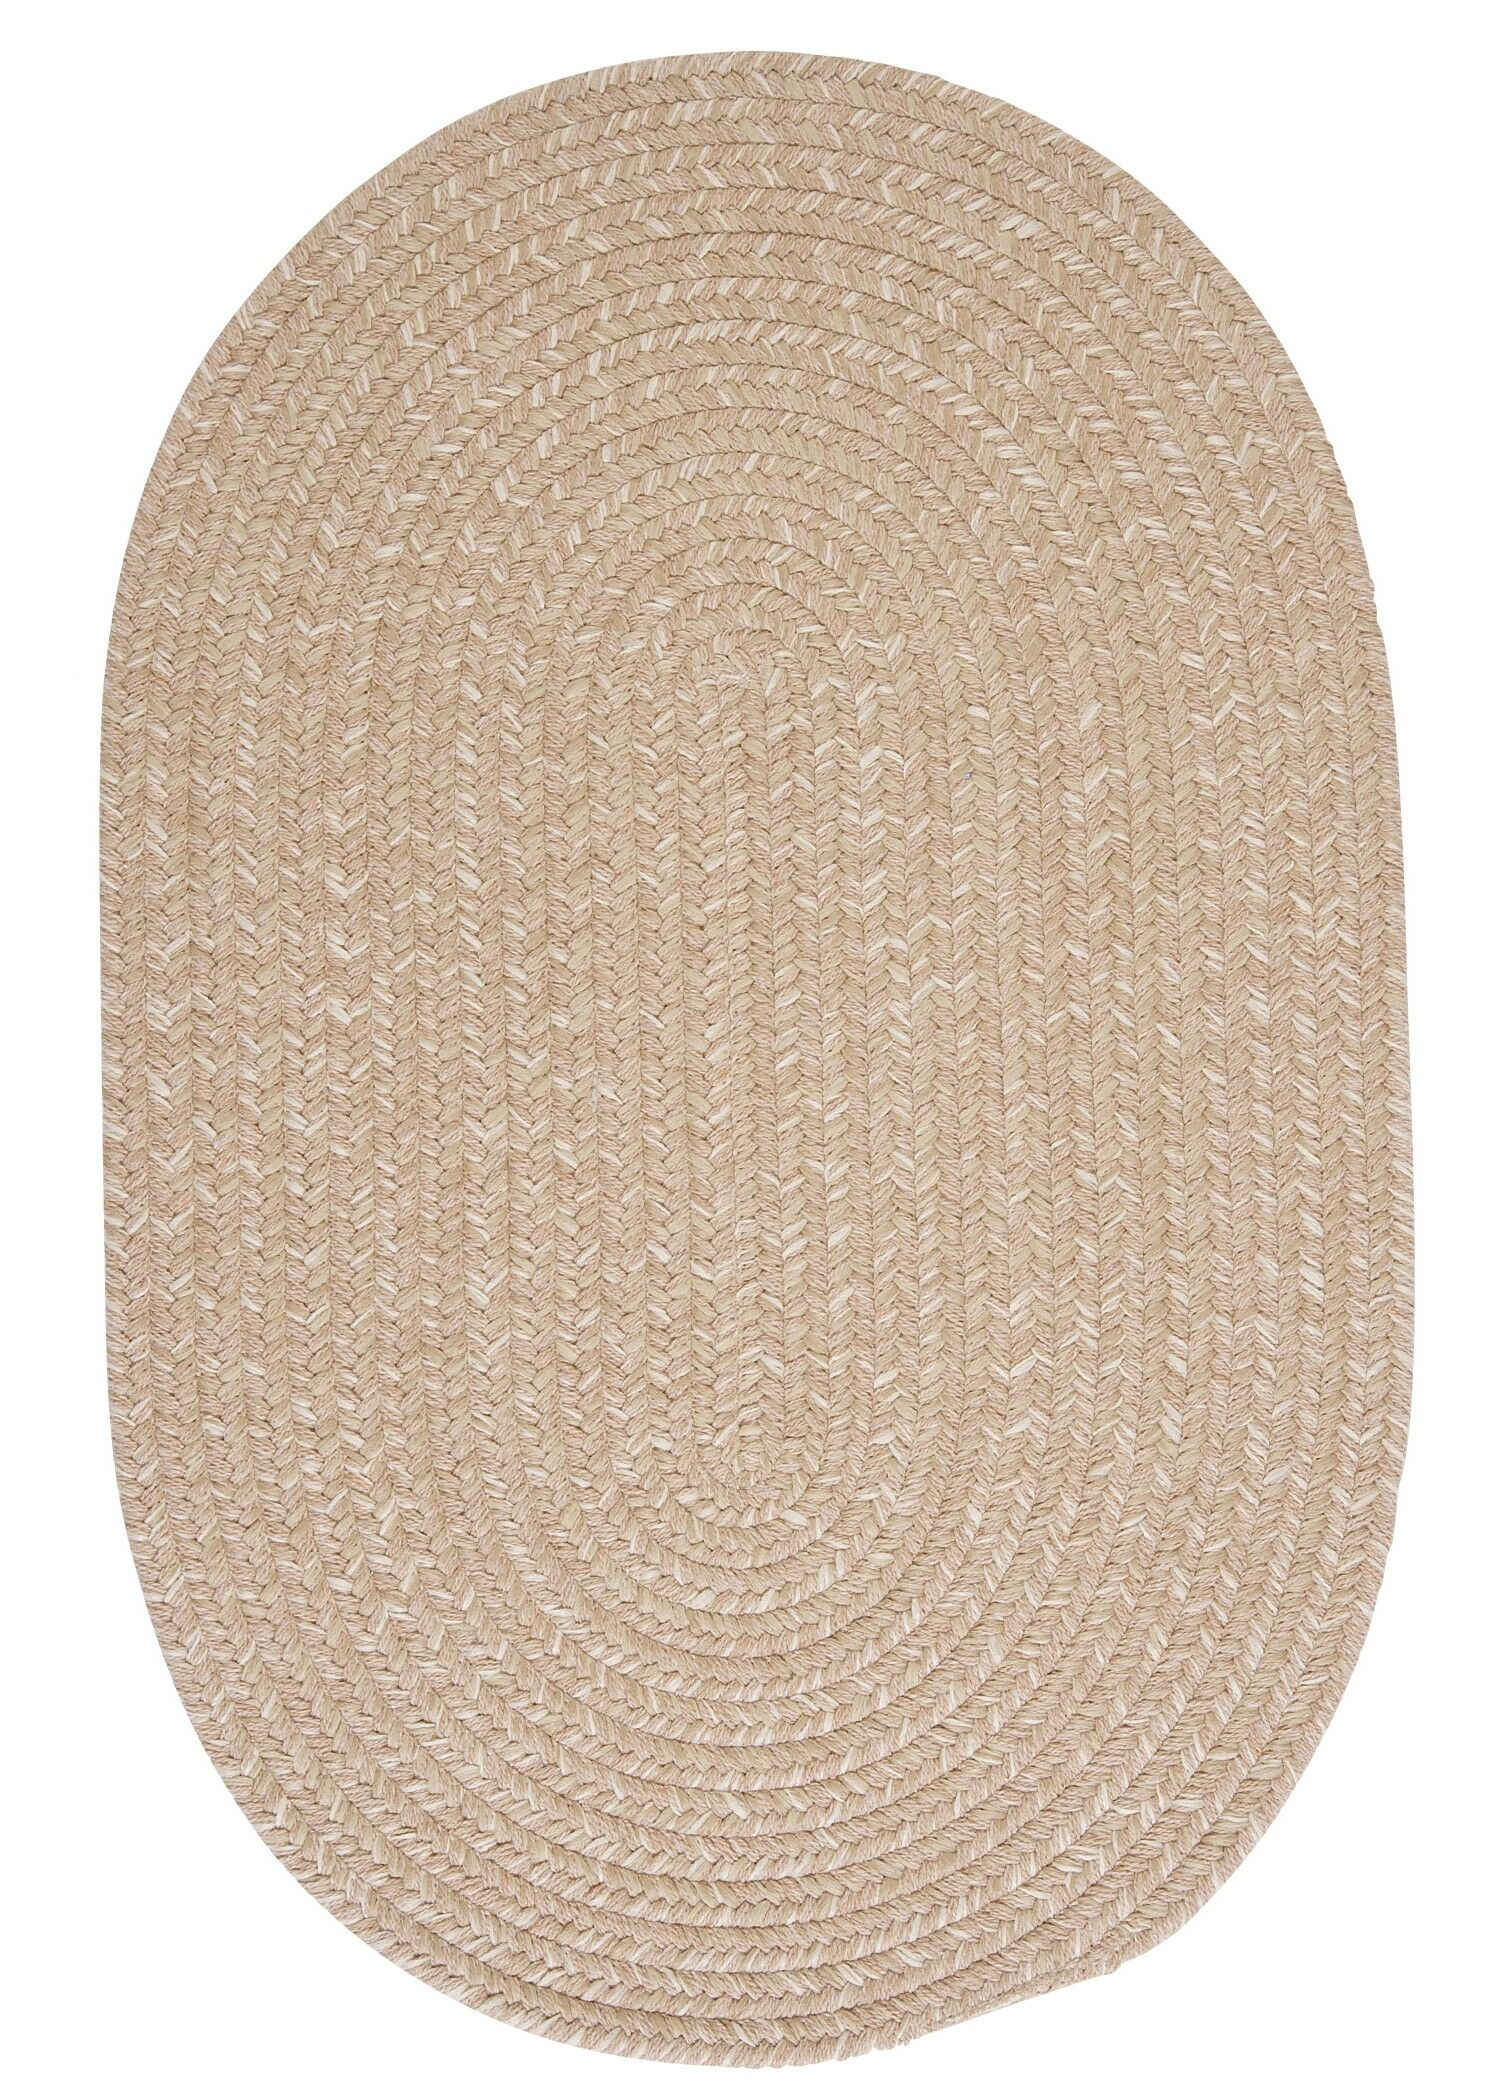 Tremont Oatmeal Area Rug Rug Size: Oval 7' x 9'